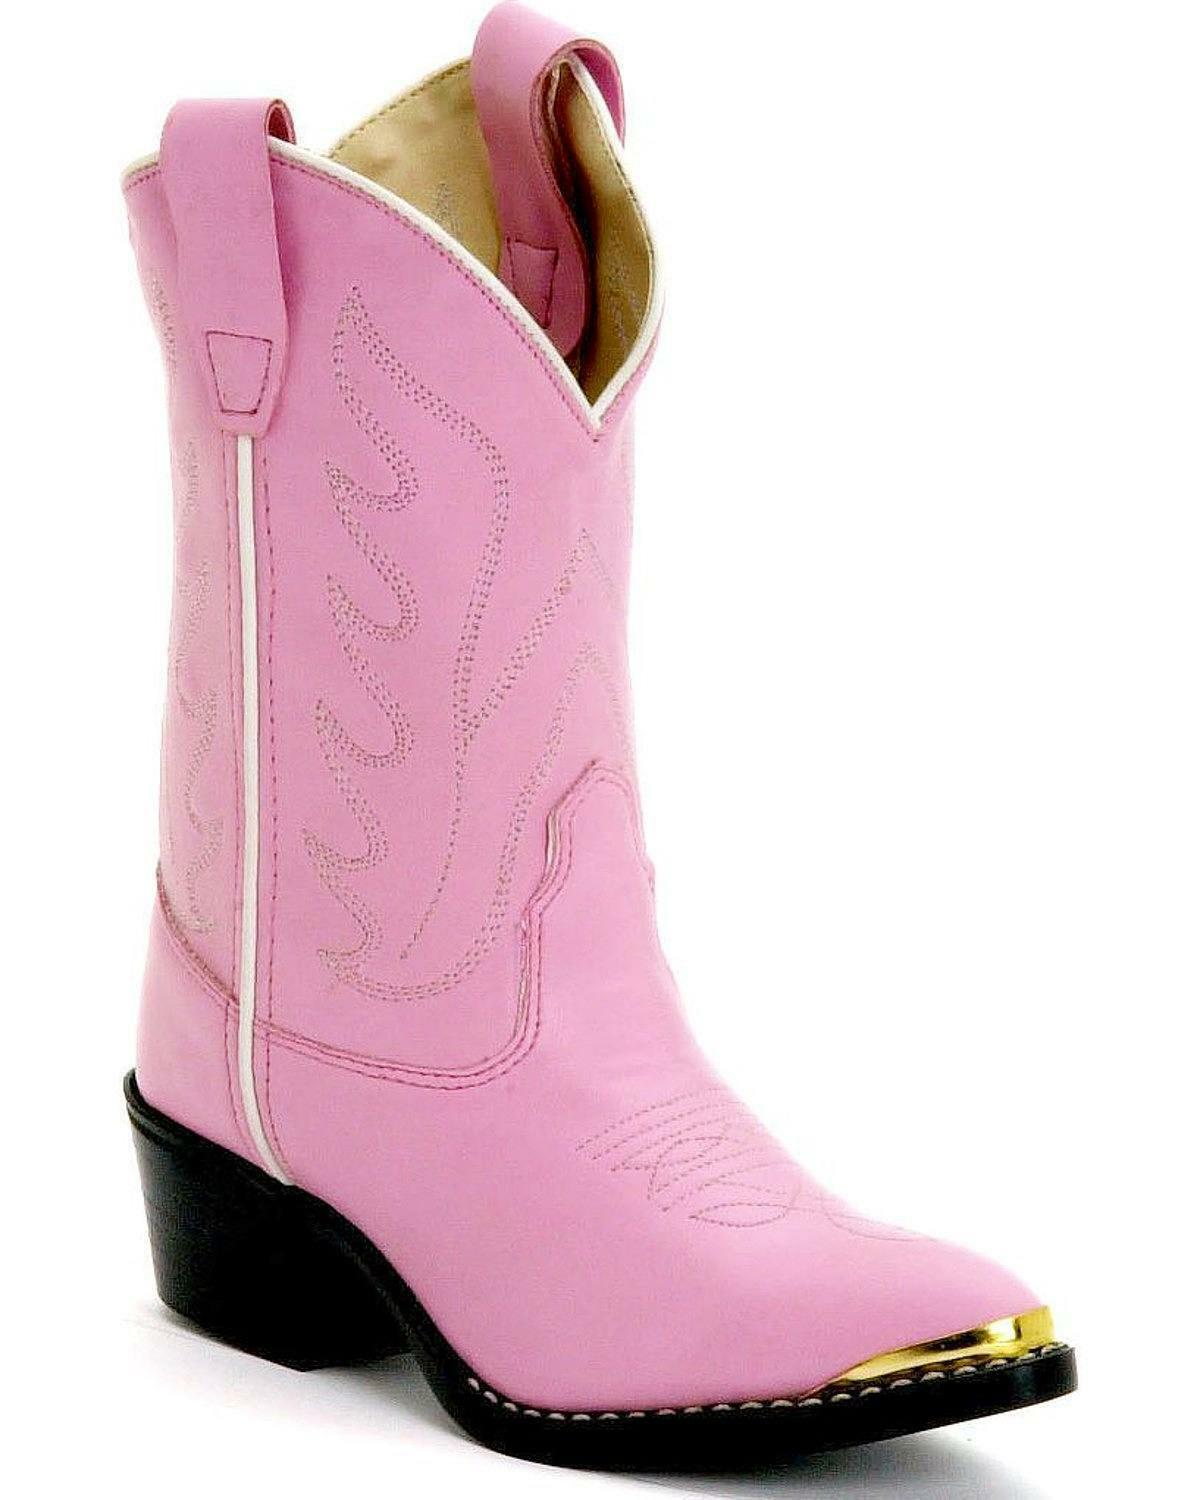 OLD  WEST YOUTH GIRLS PINK WESTERN COWBOY BOOTS SIZES 11, 12, 12.5, 1.5, 2.0, NEW  outlet